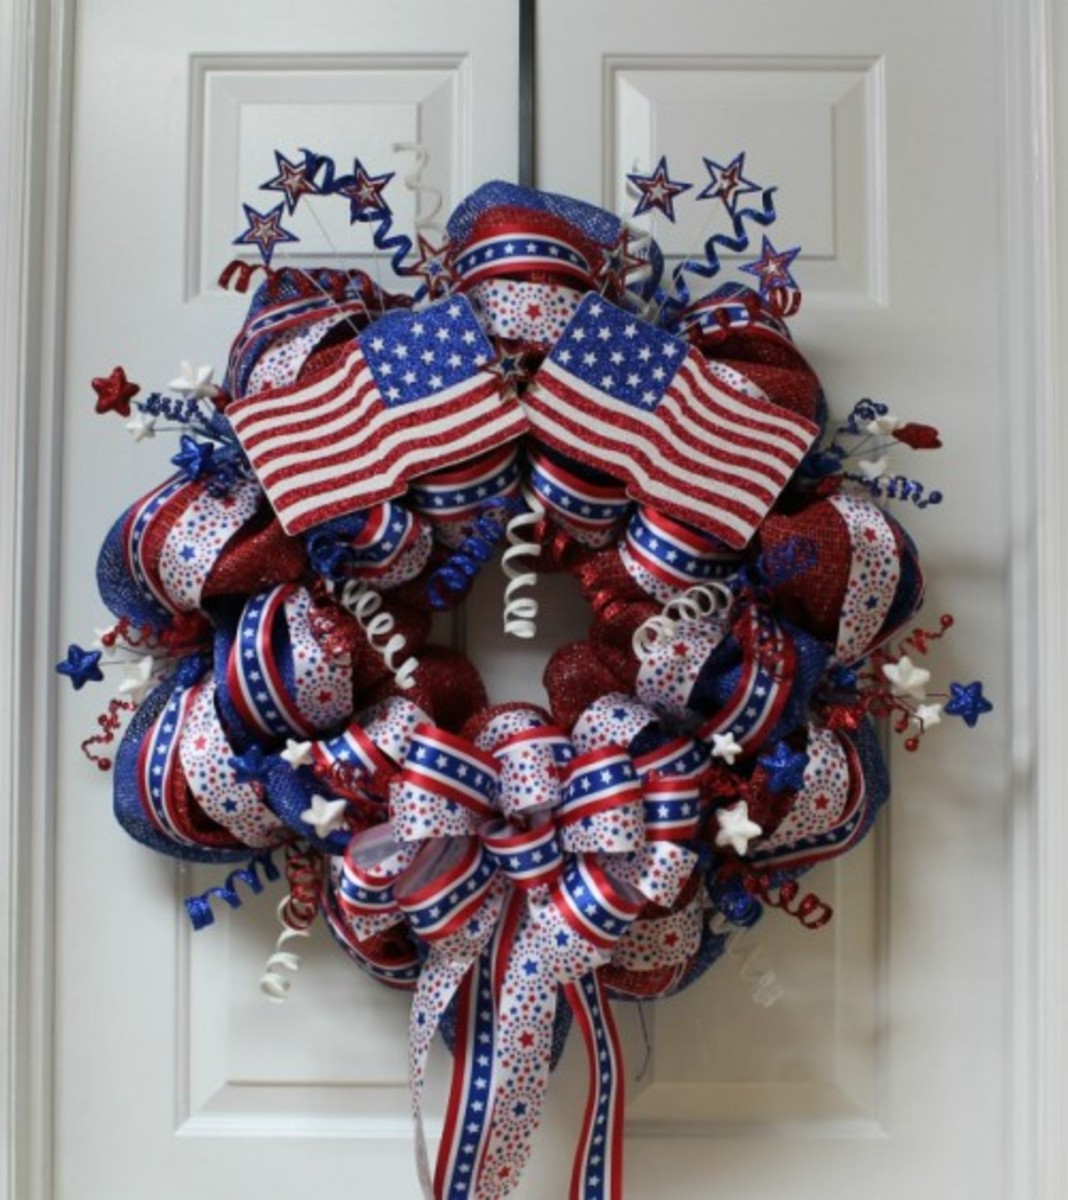 Patriotic Mesh Wreath Tutorial from thecraftyblogstalker.com